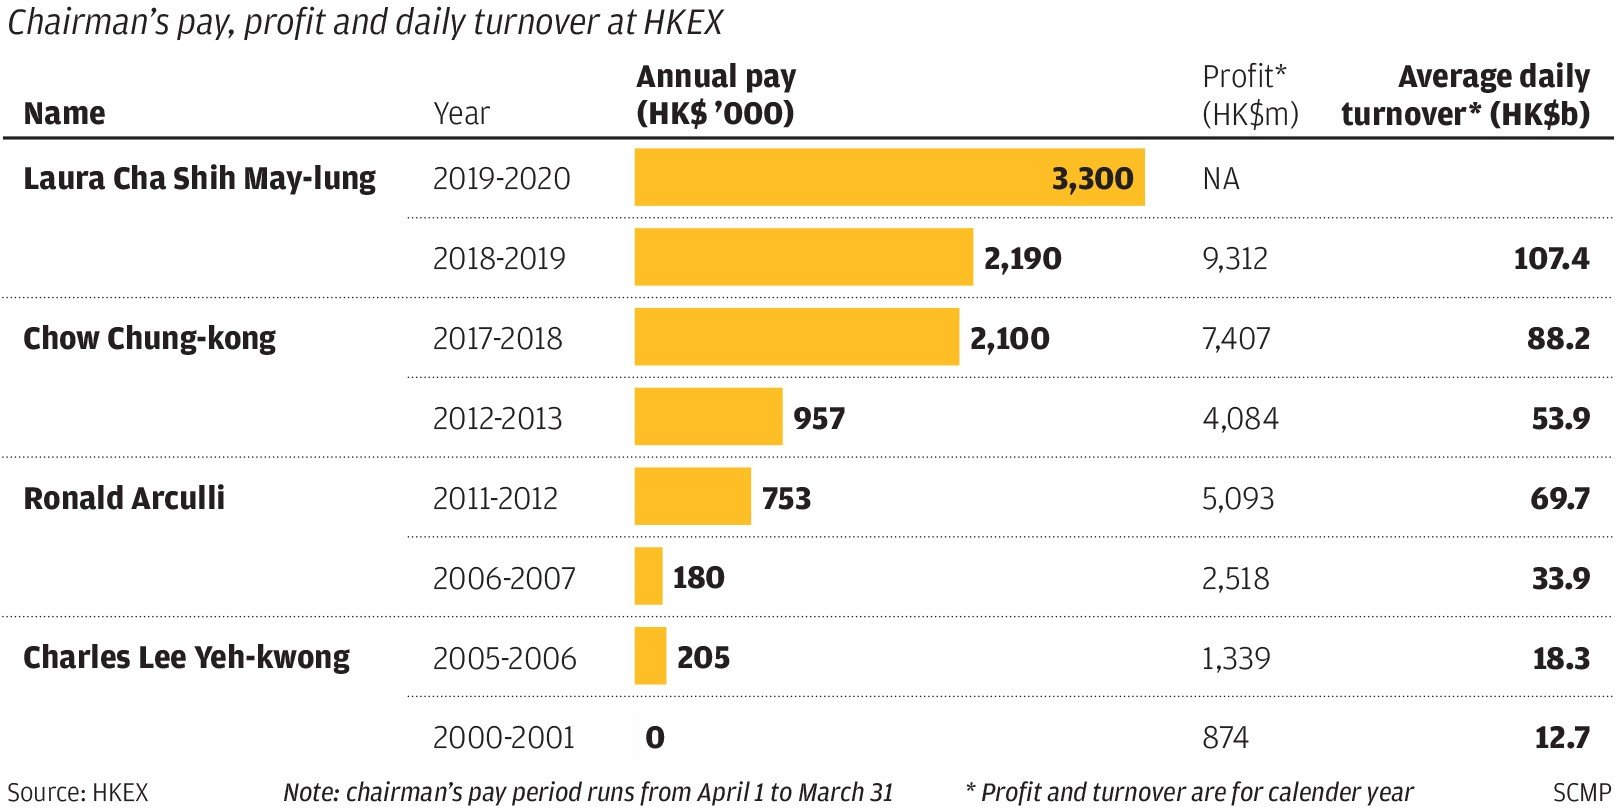 Laura Cha's pay rises 51pc to US$420,825 at HKEX, making her one of